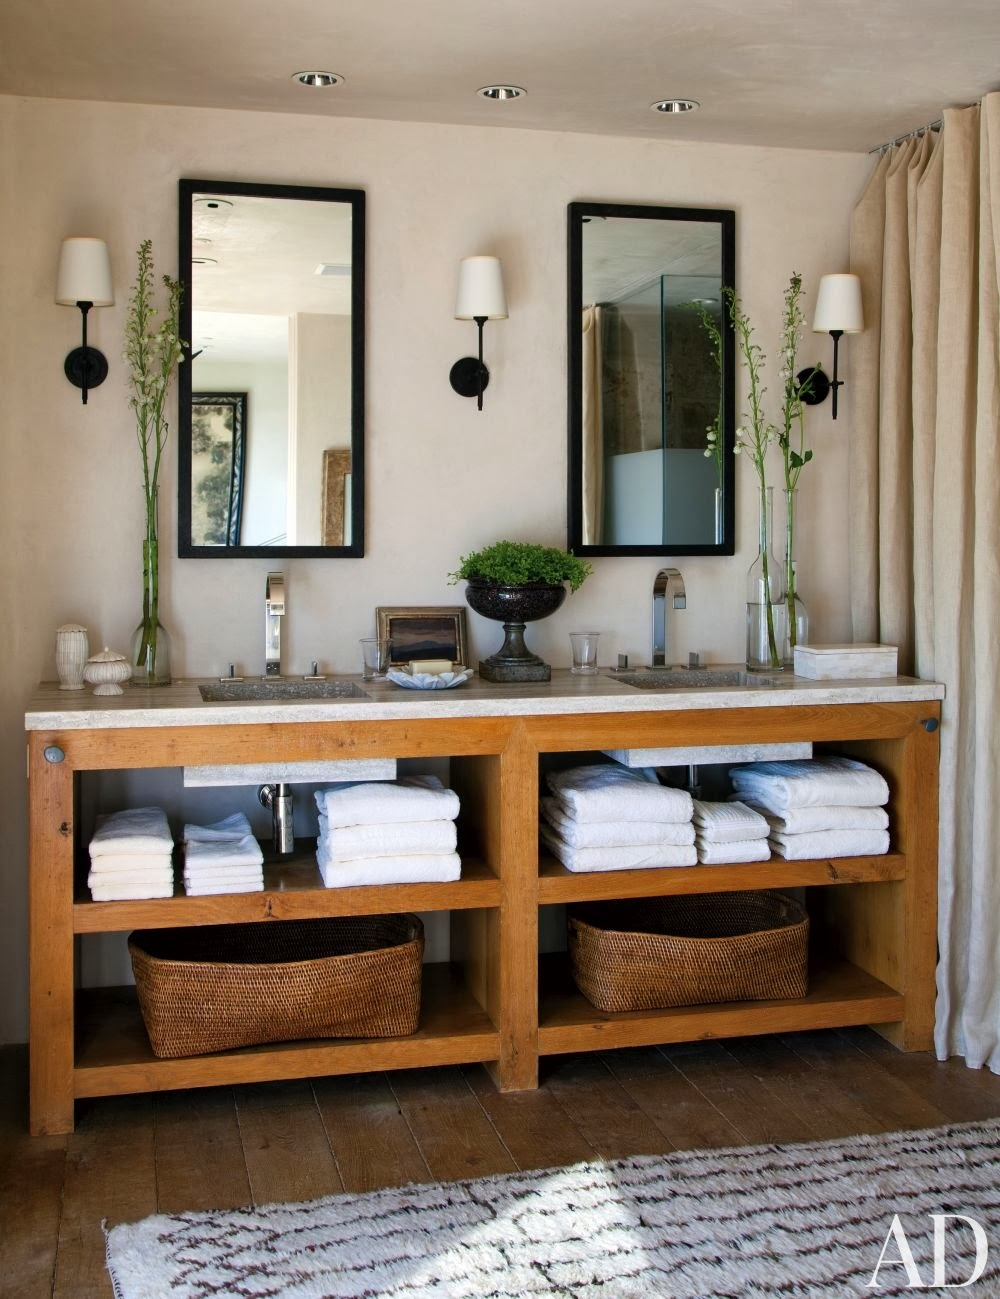 refresheddesigns.: seven stunning modern rustic bathrooms